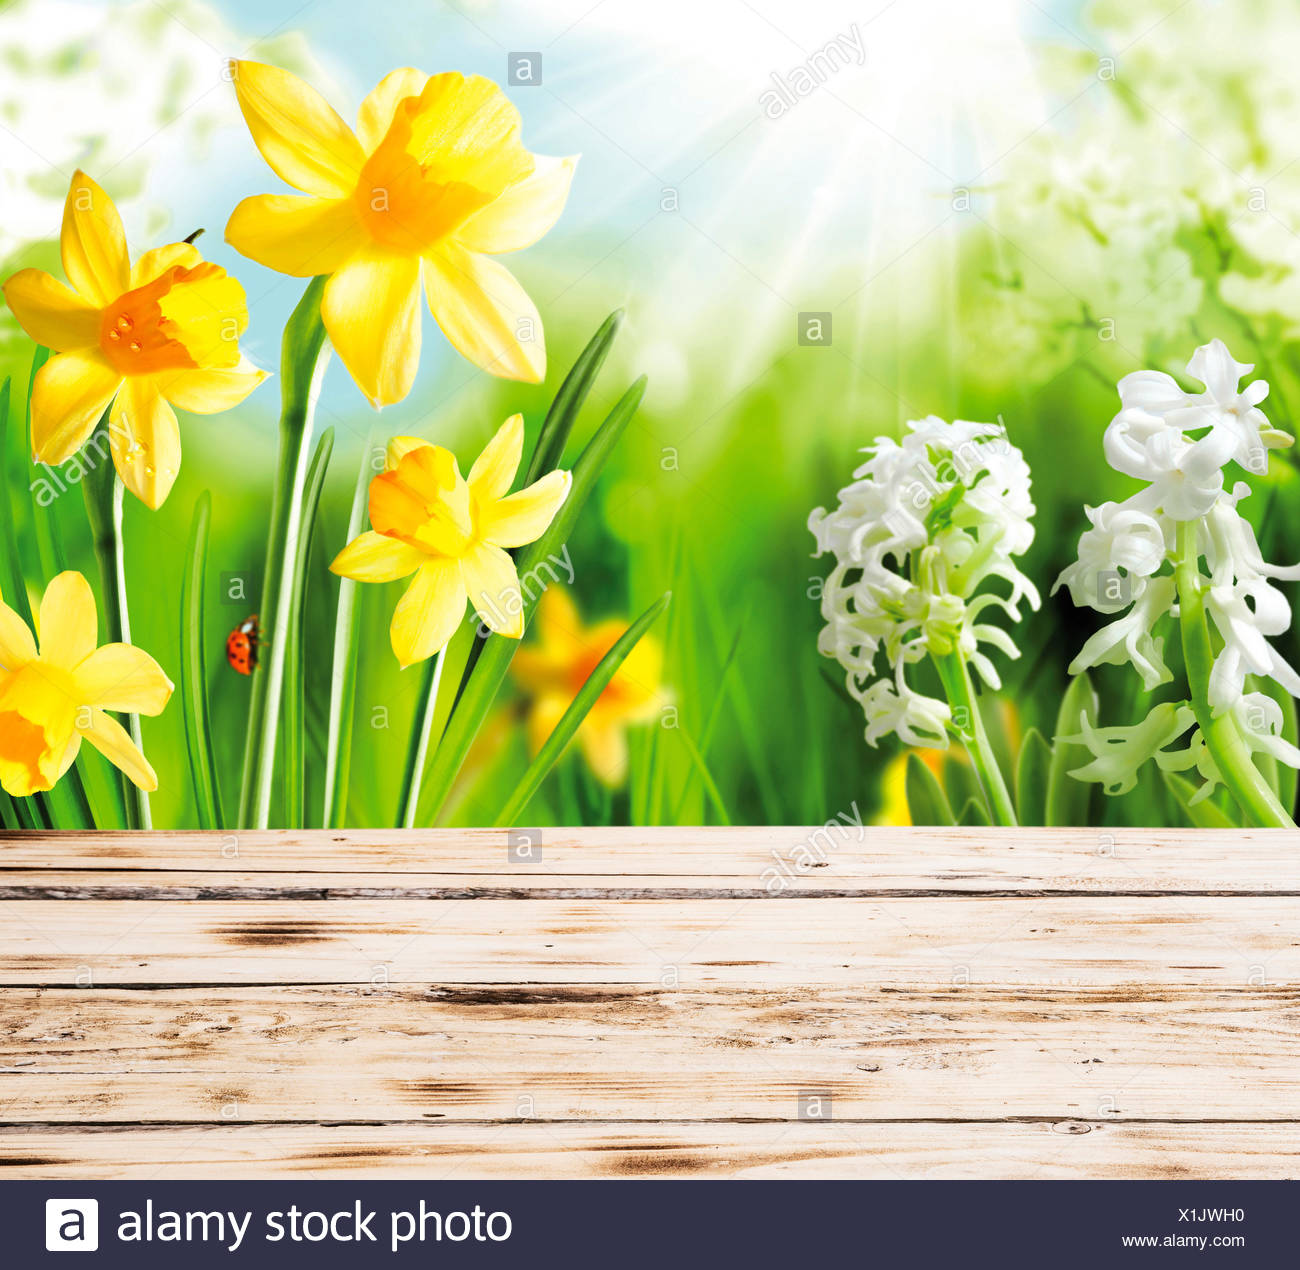 Colourful yellow spring daffodils and hyacinths with a red ladybug on the stem peeping over the top of a rustic wooden fence or tabletop on a hot sunny day Stock Photo